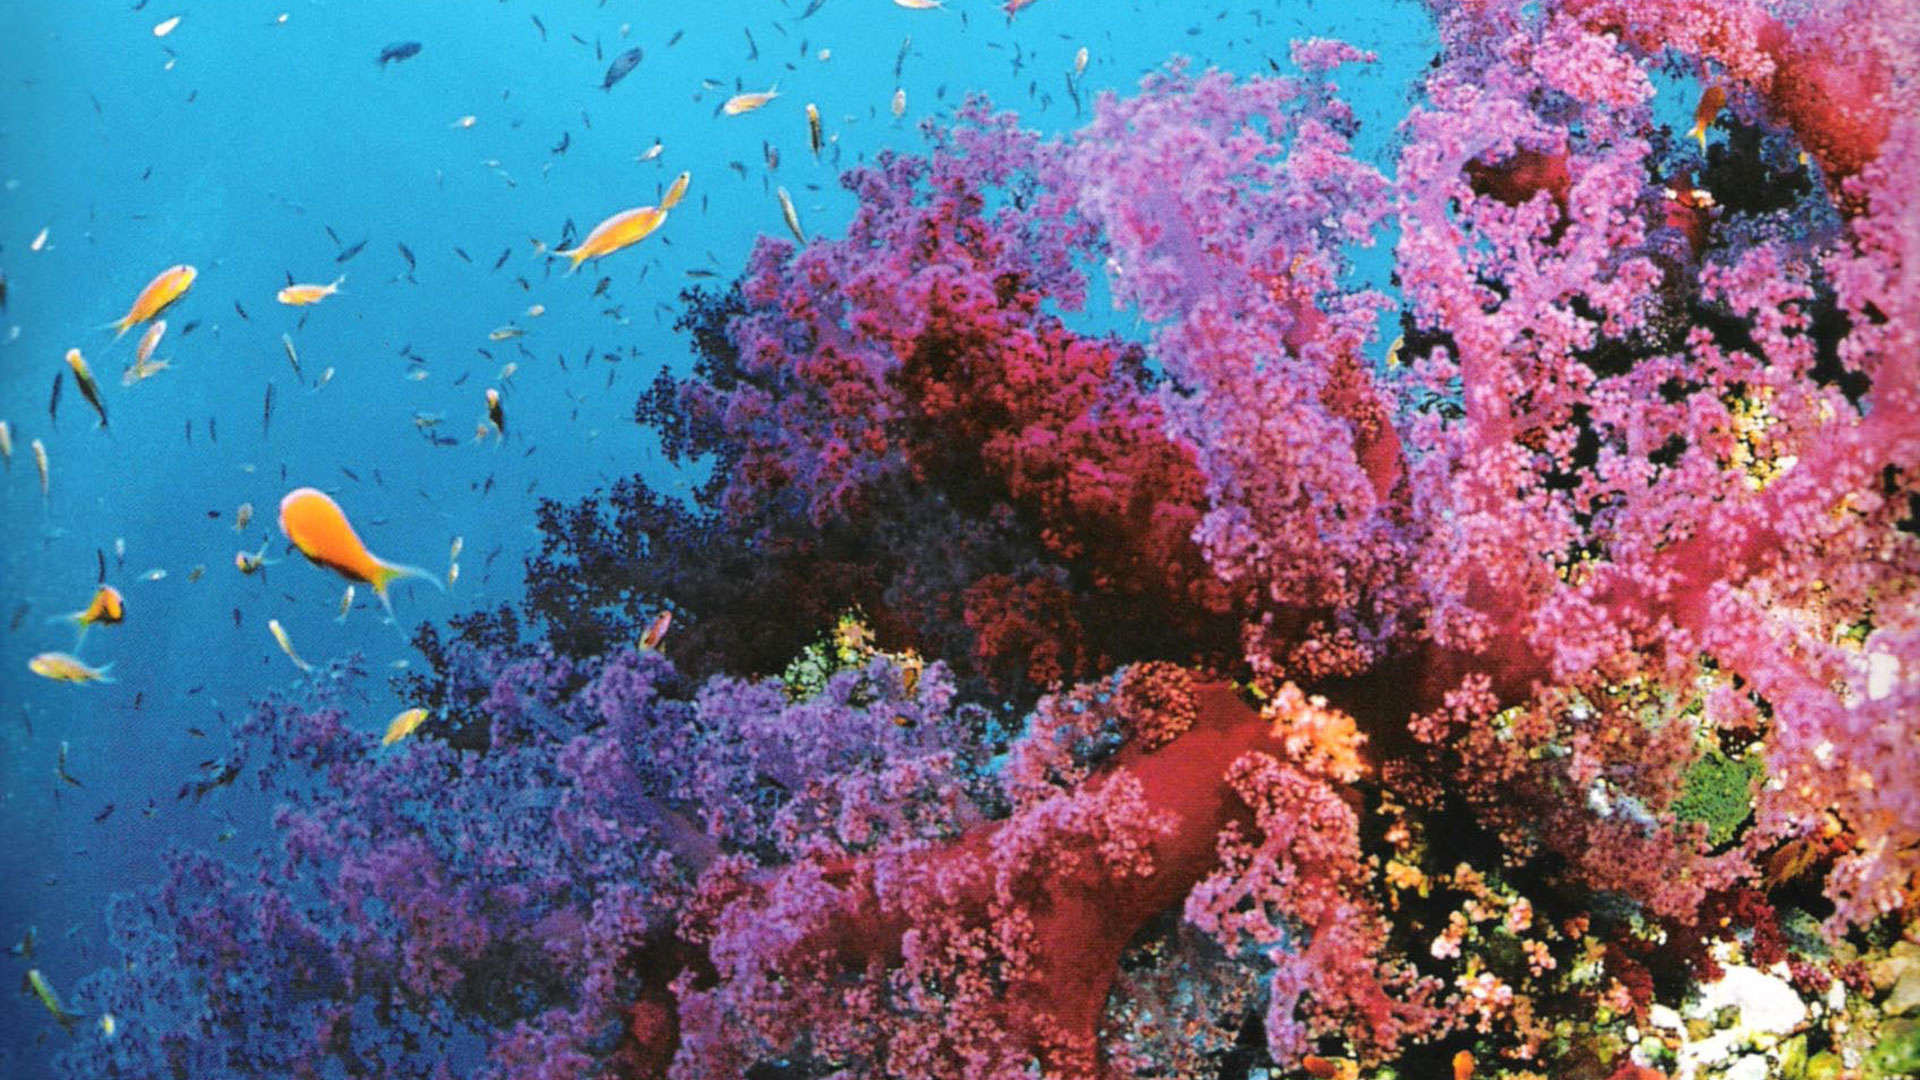 Coral reef wallpaper hd 65 images - Sea coral wallpaper ...